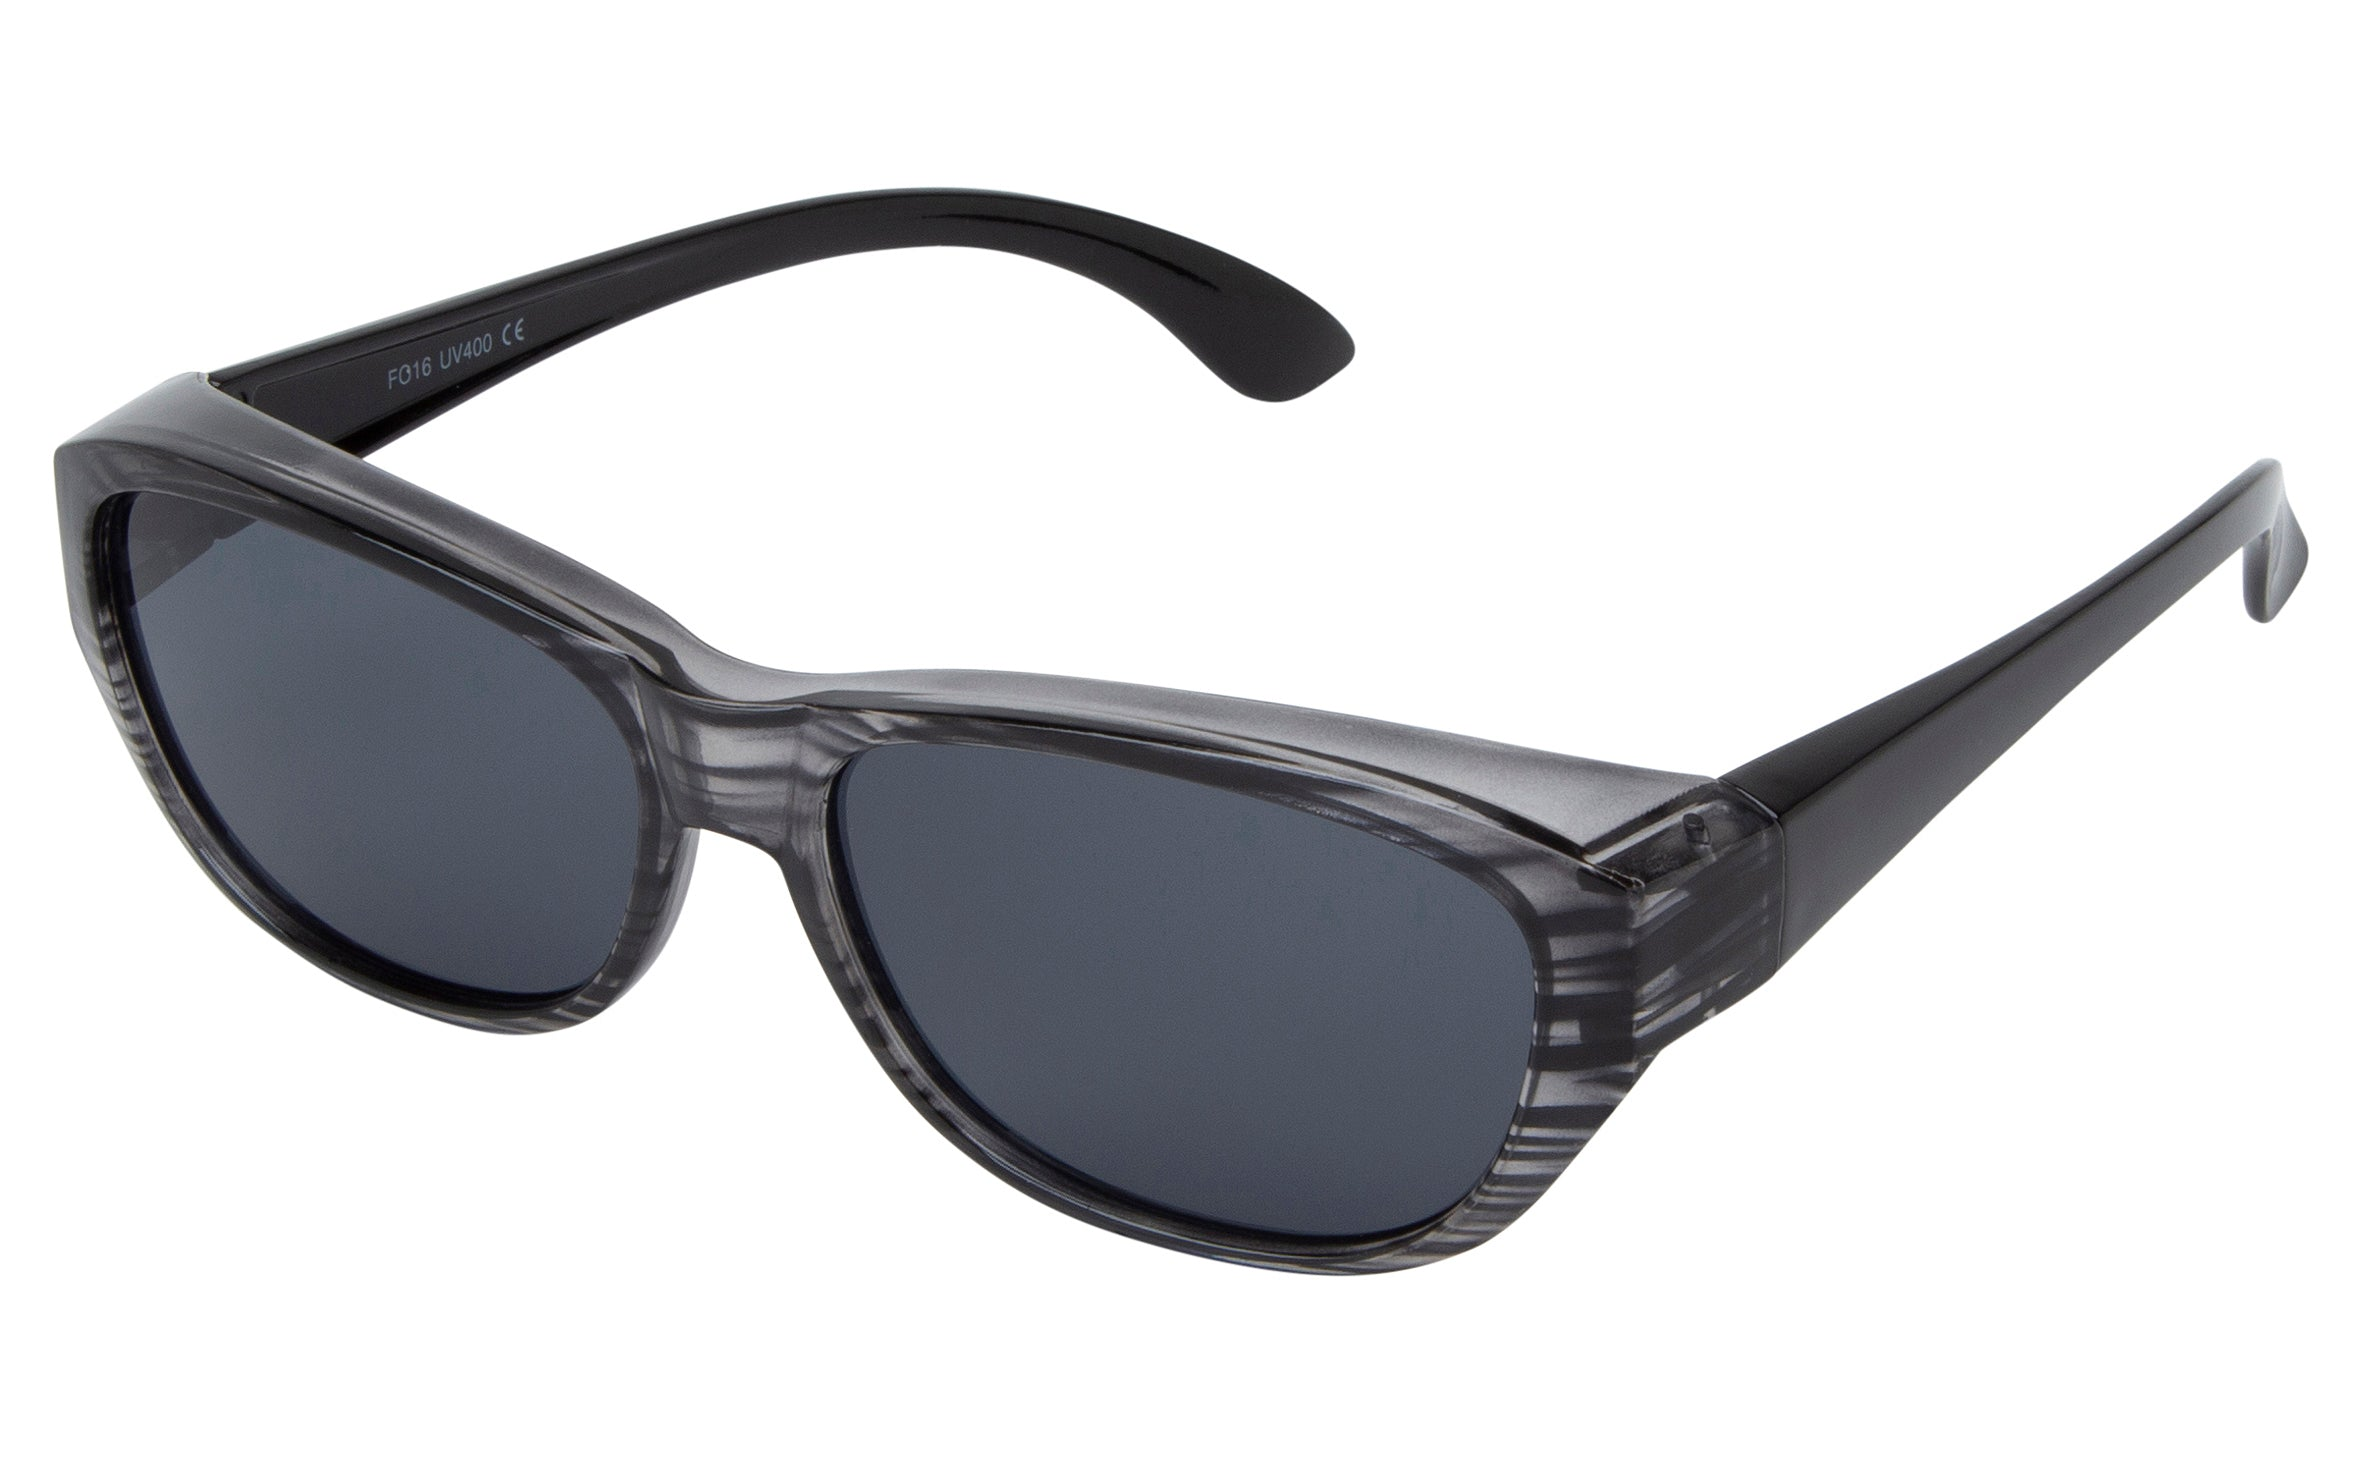 FO16 - Shaded Sunglasses - Fit Over Eyewear